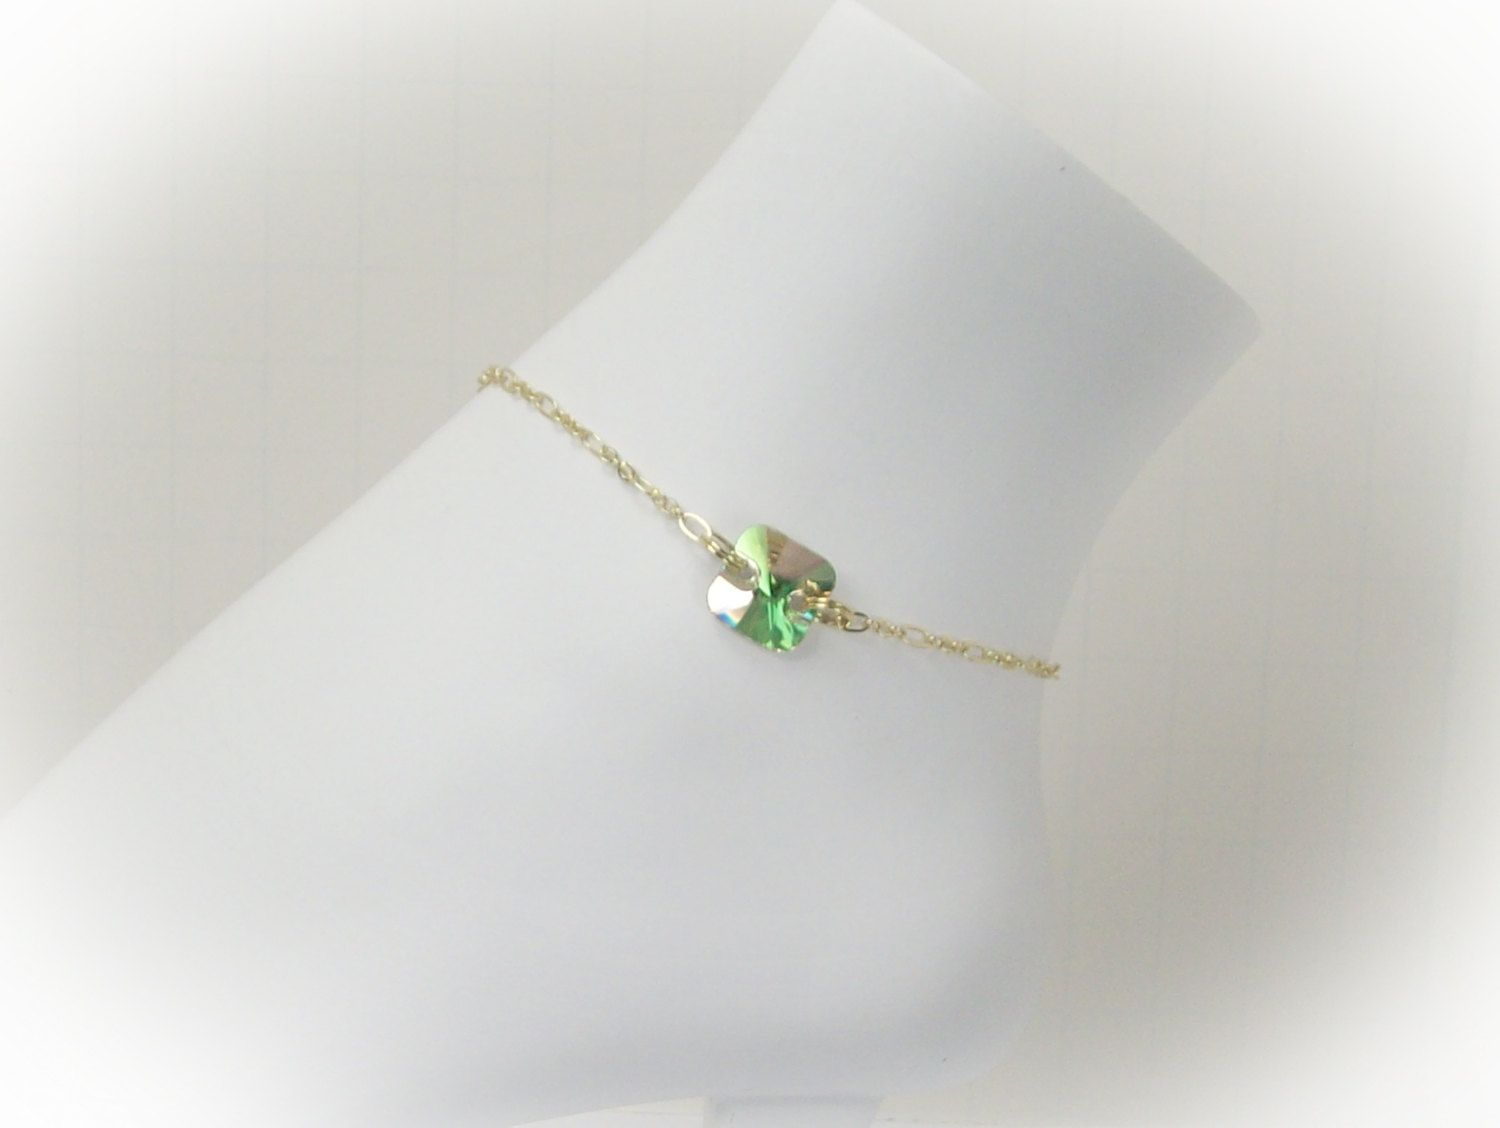 ankle bracelet crystal s celtic swarovski adjustable etsy by pin knot bracelets on anklet women jasglassart aqua